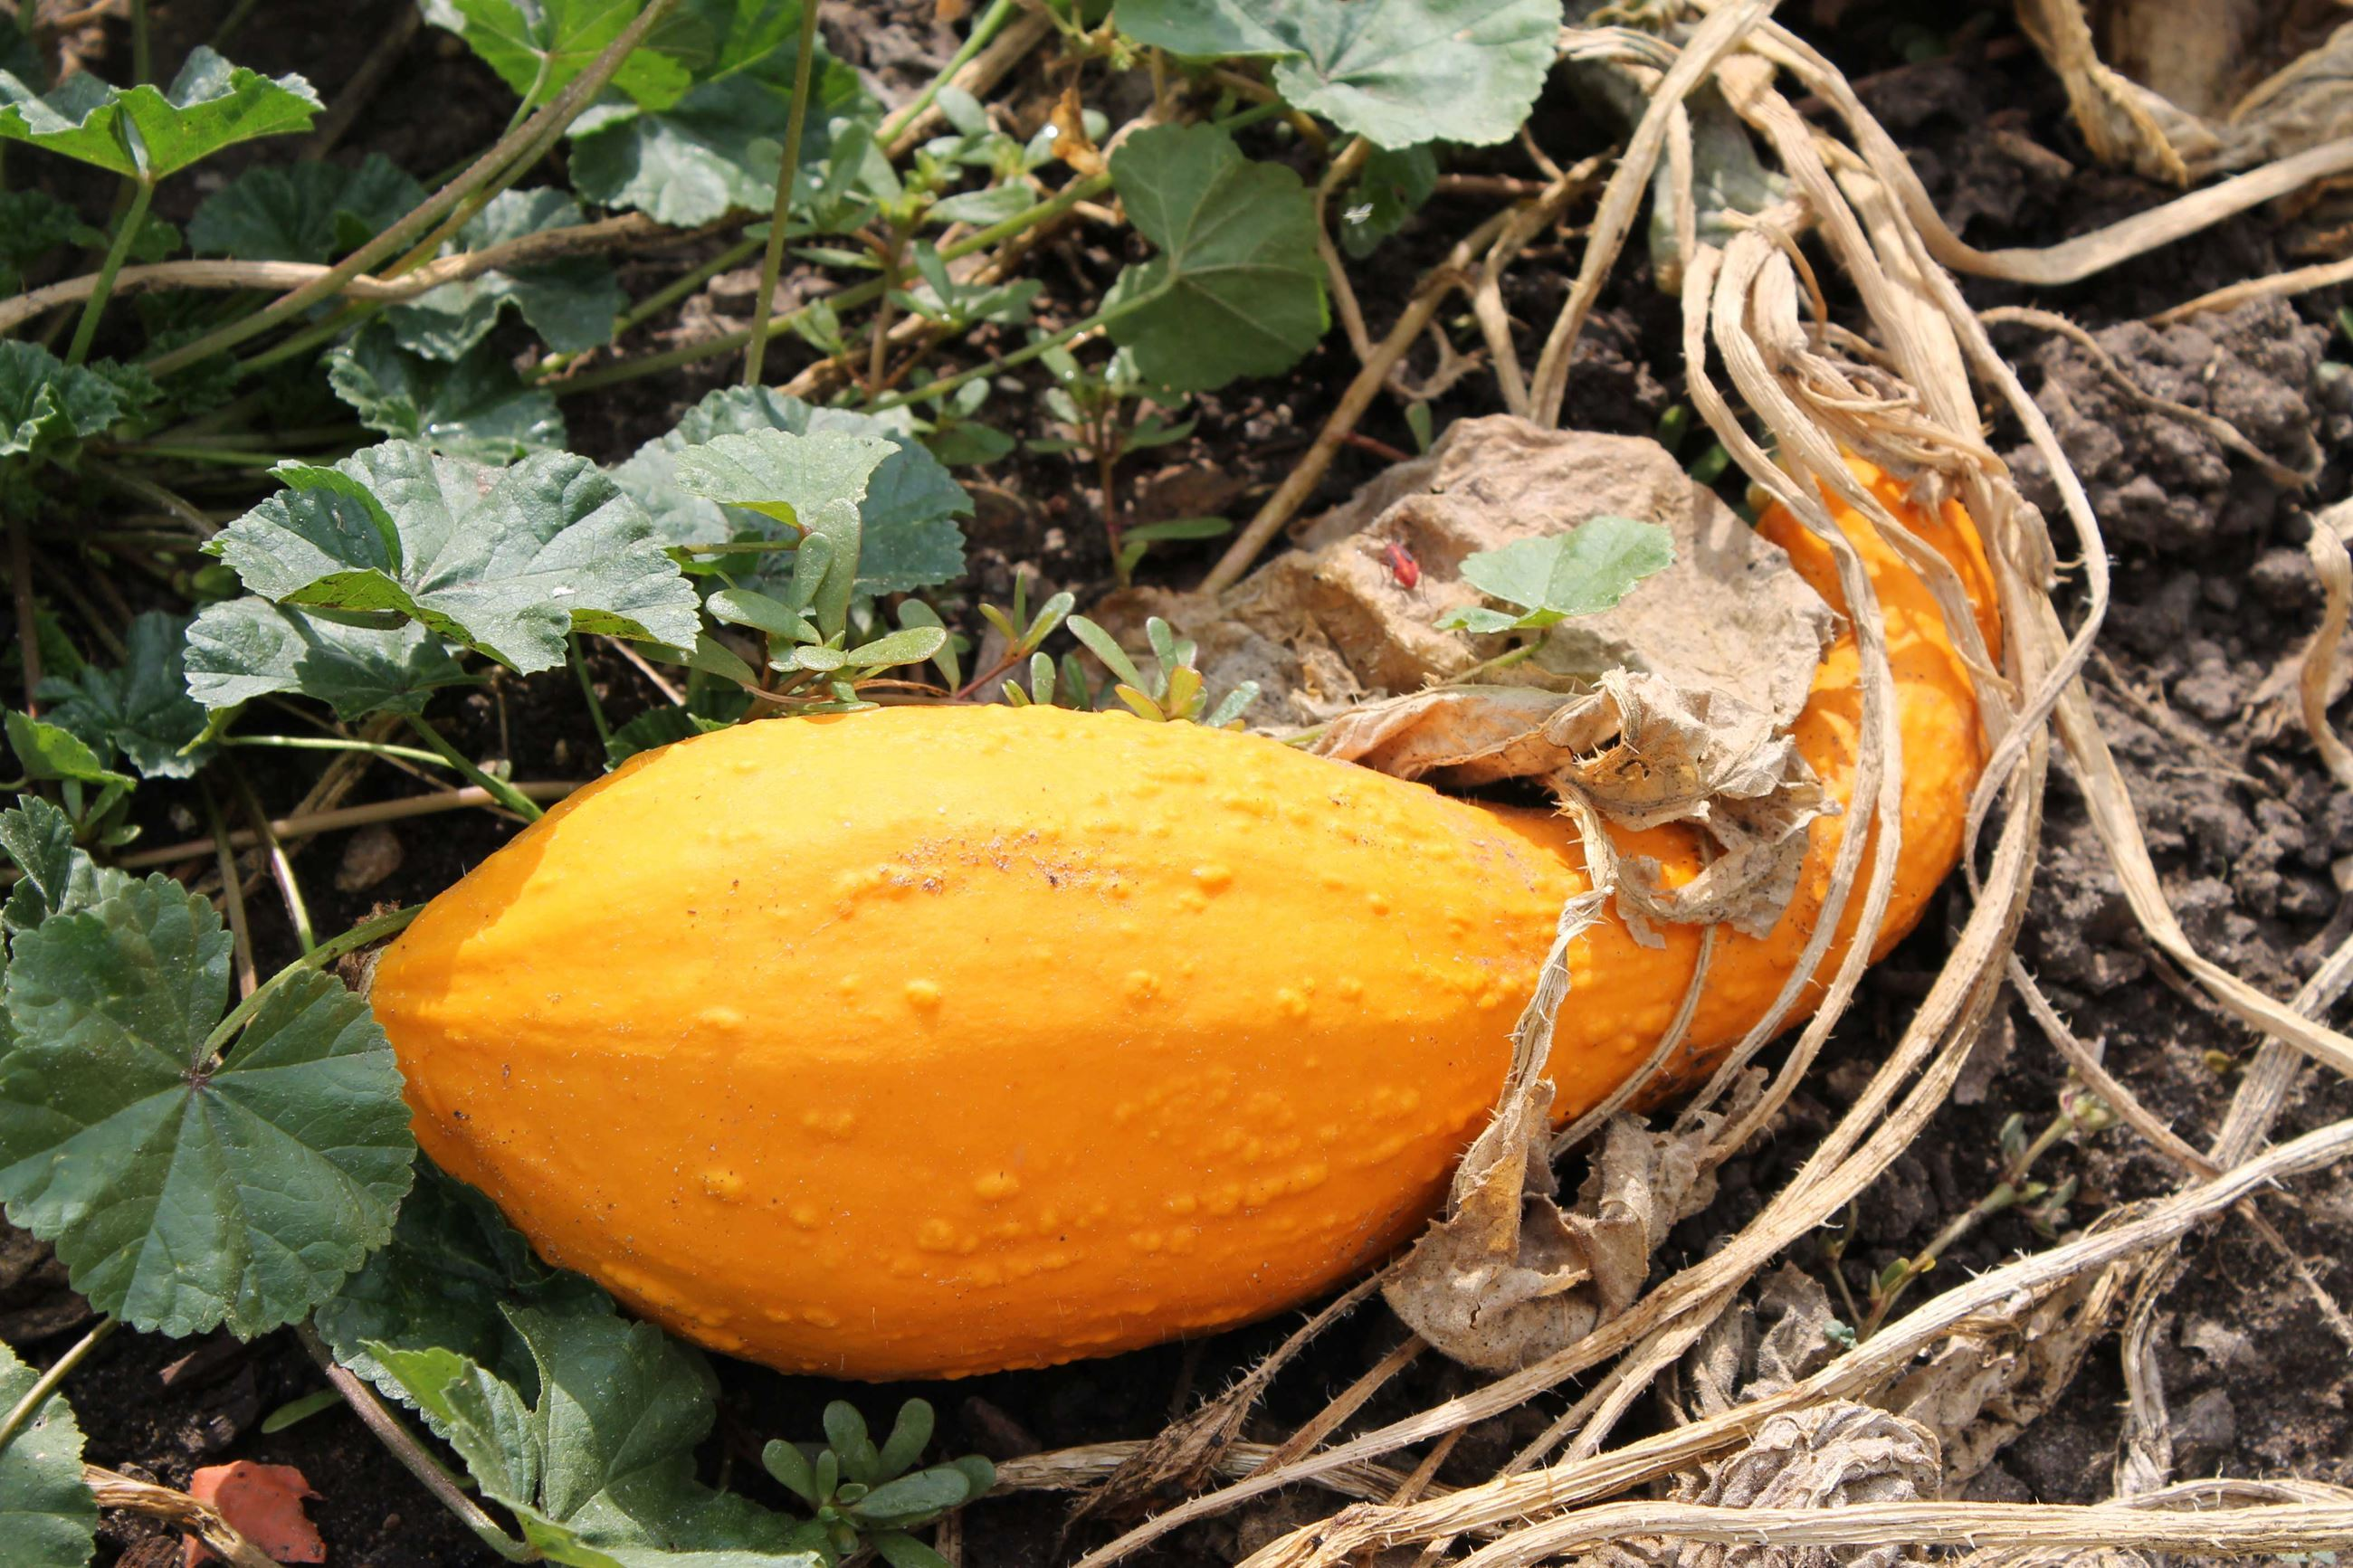 Squash on the vine